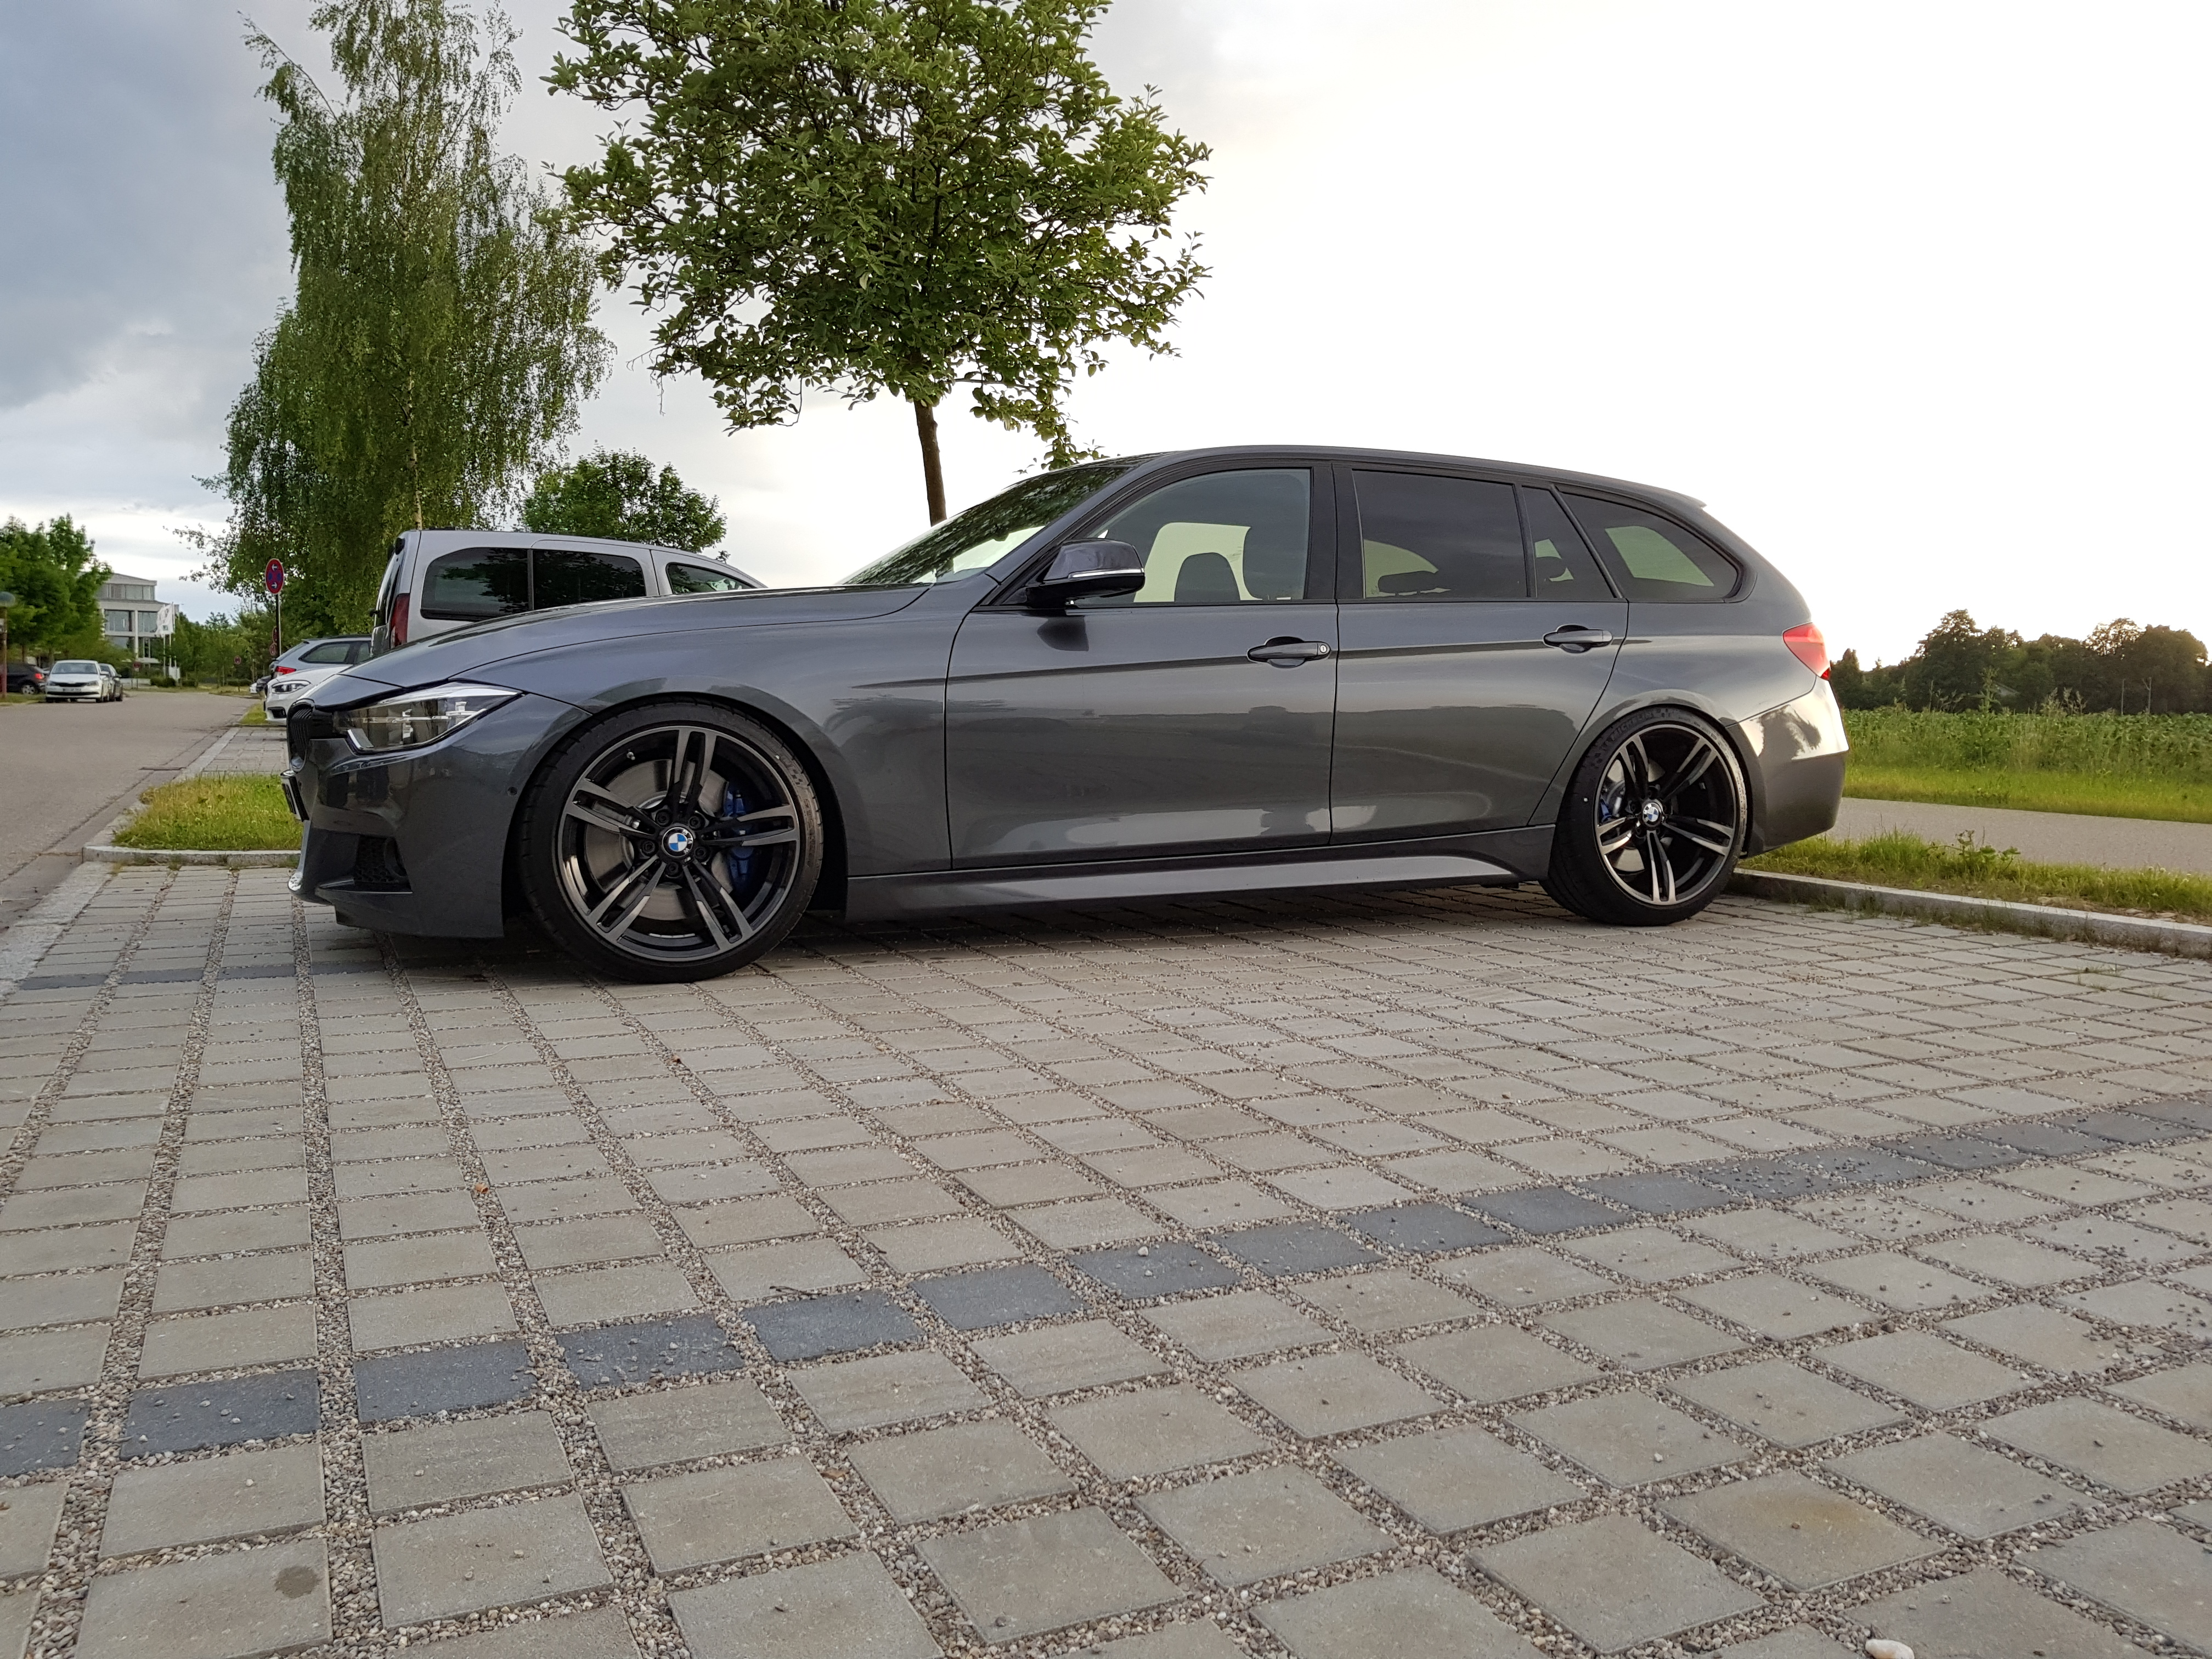 alusil 39 s f31 340i makerwdgreatagain f31 touring bmw. Black Bedroom Furniture Sets. Home Design Ideas